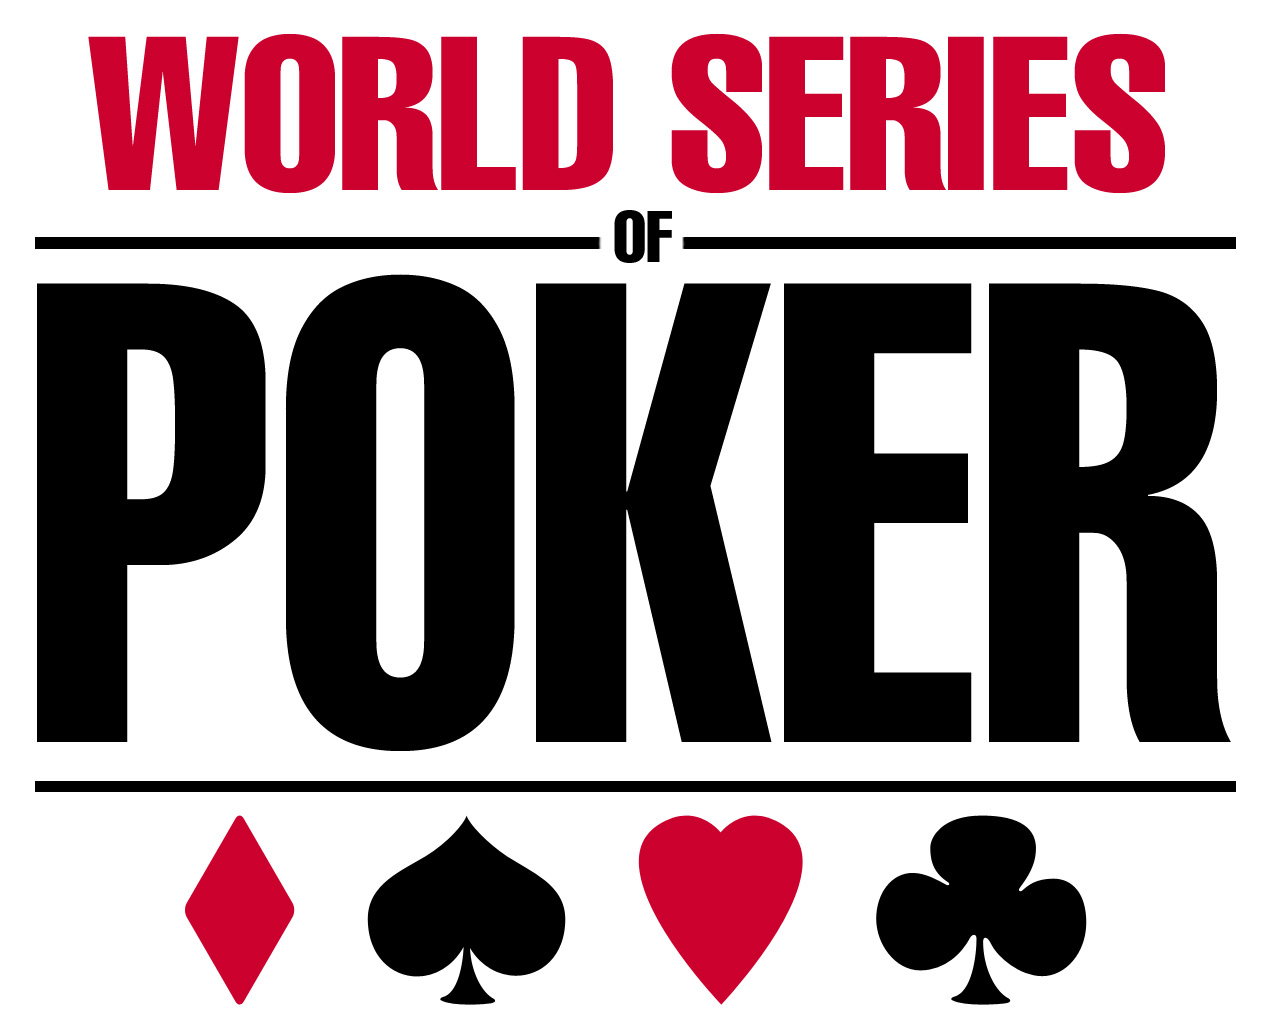 wsop logo - world series of poker logo - big poster size